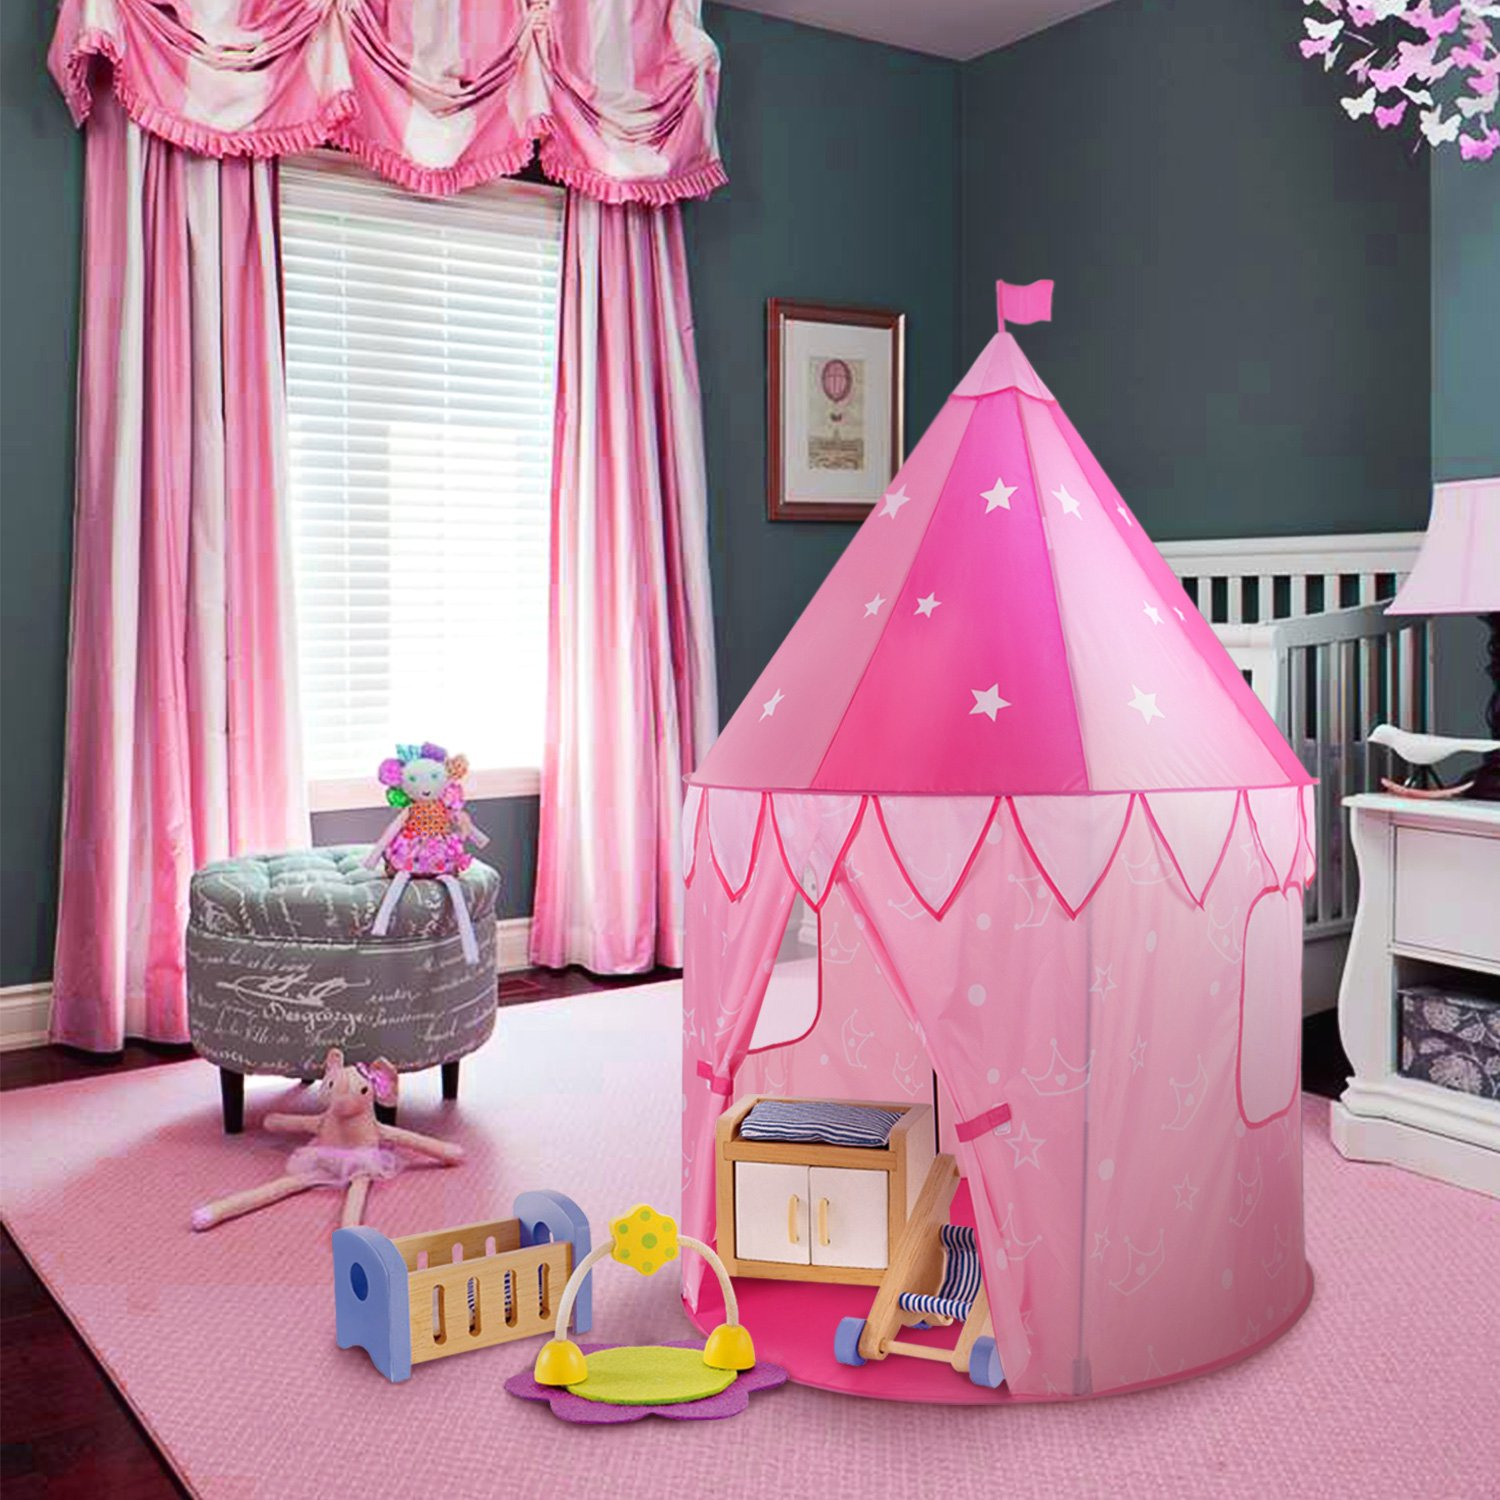 WolfWise Princess Castle Play Tent Glow in The Dark Stars Pop Up Pink Play Tent/House Toy Children Indoor & Outdoor Use Enhance Creativity Imagination